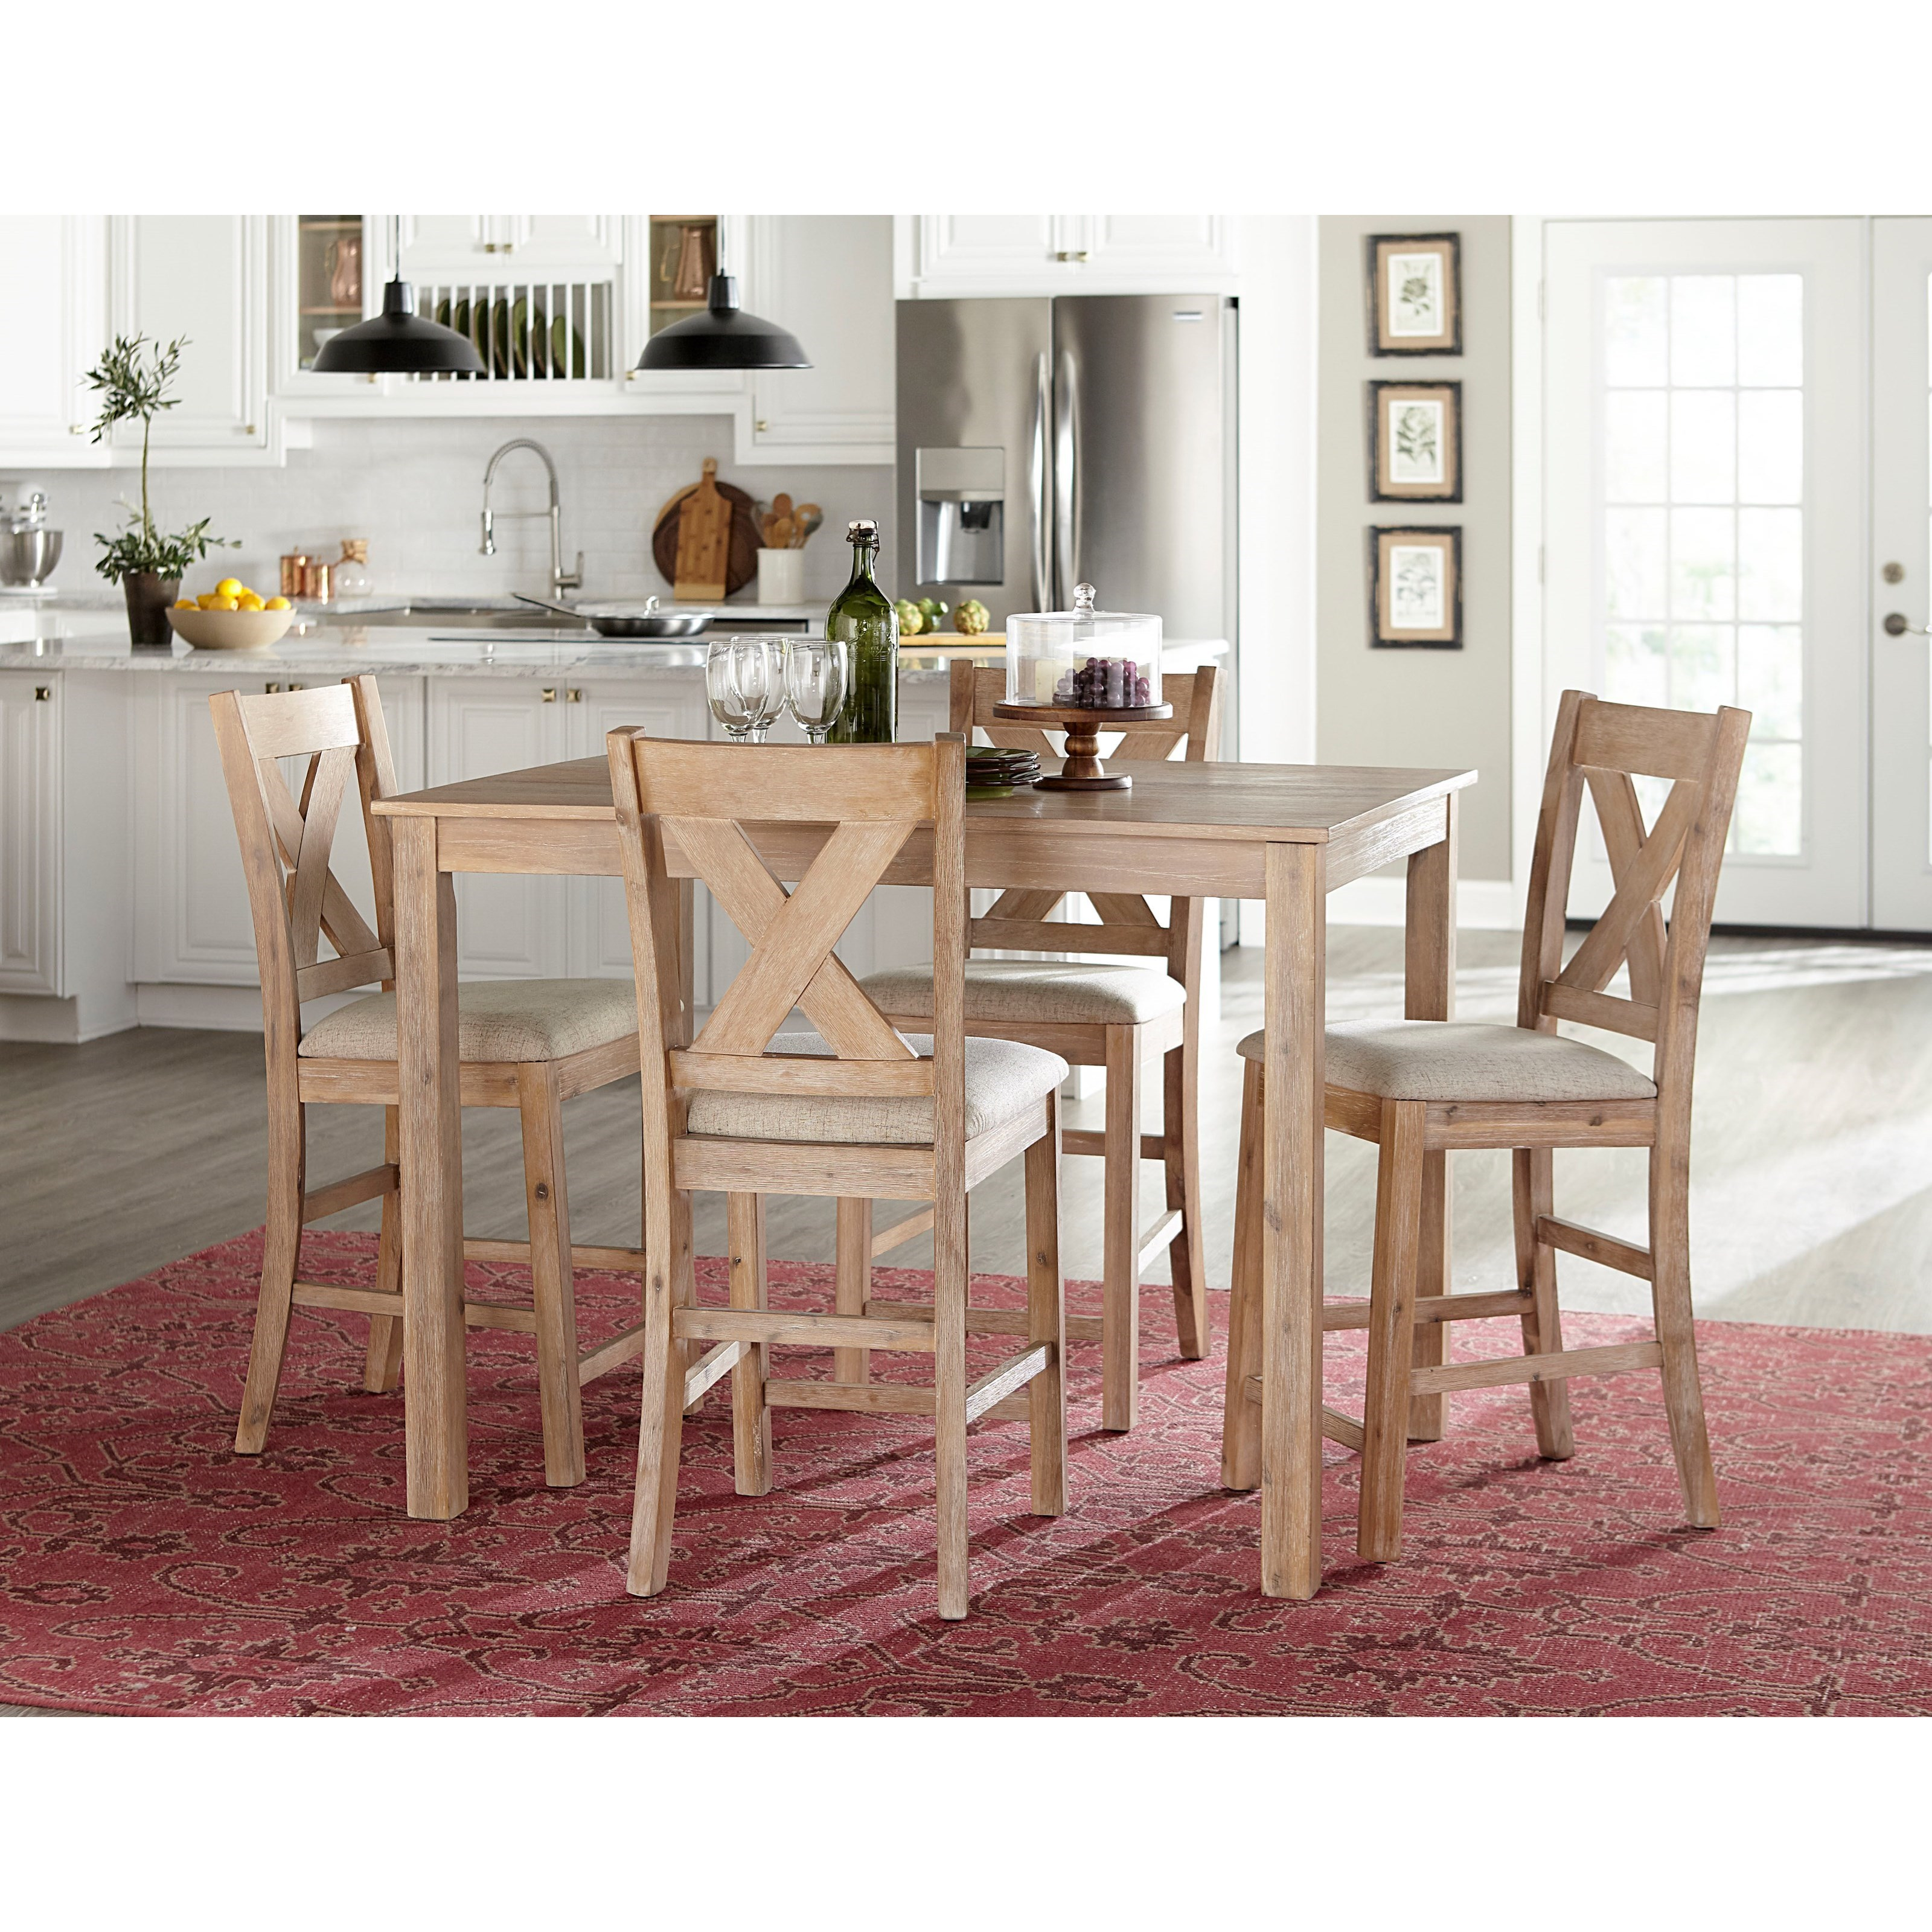 Langston Light 5-Piece Counter Height Dining Set by Standard Furniture at Rooms for Less